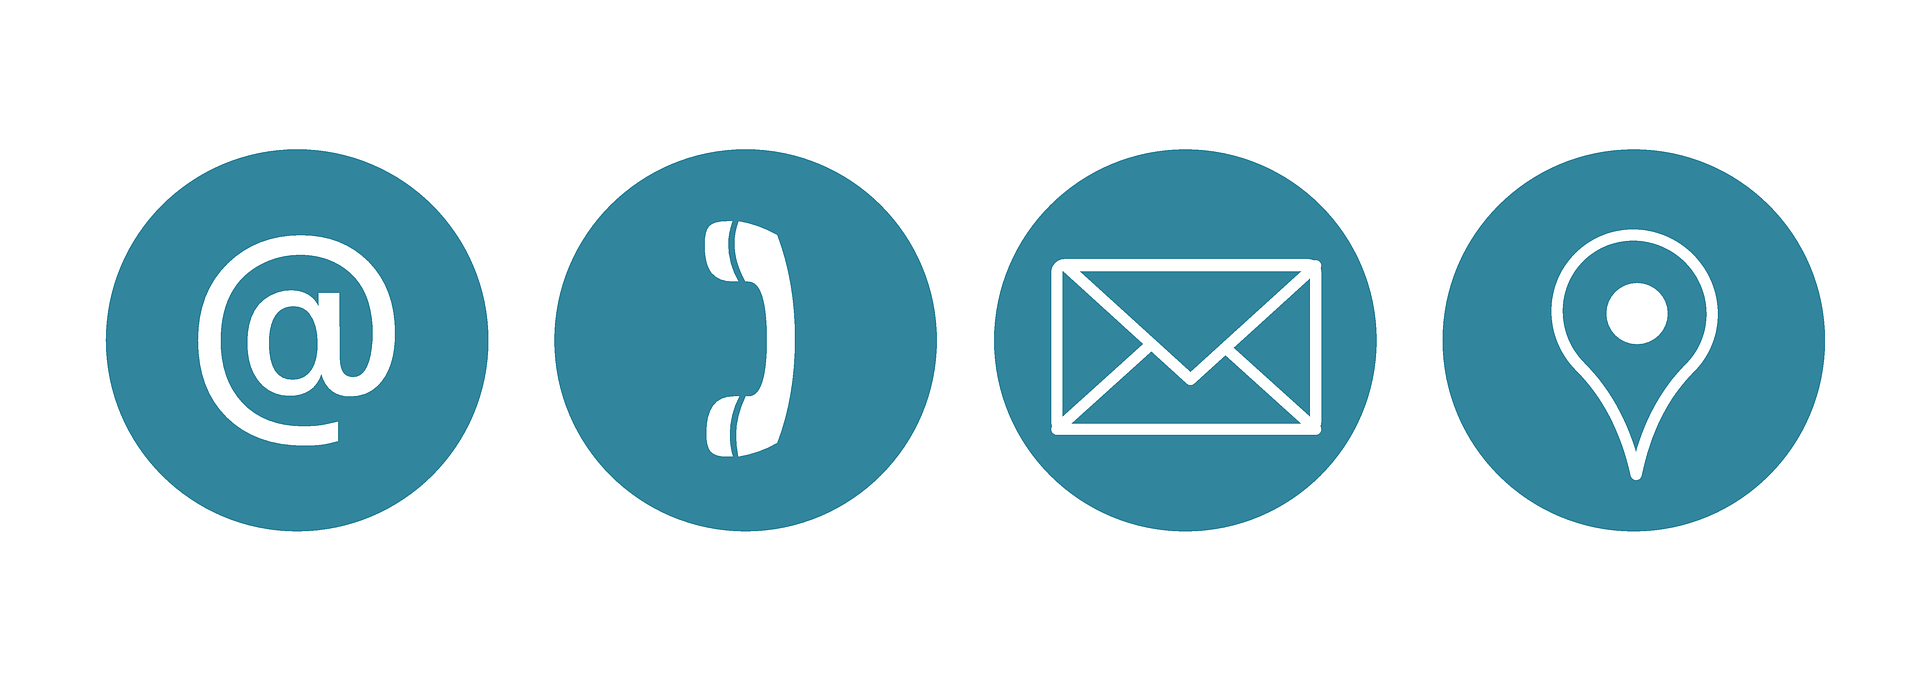 hight resolution of 4 symbols sign telephone handle envelope and a map point